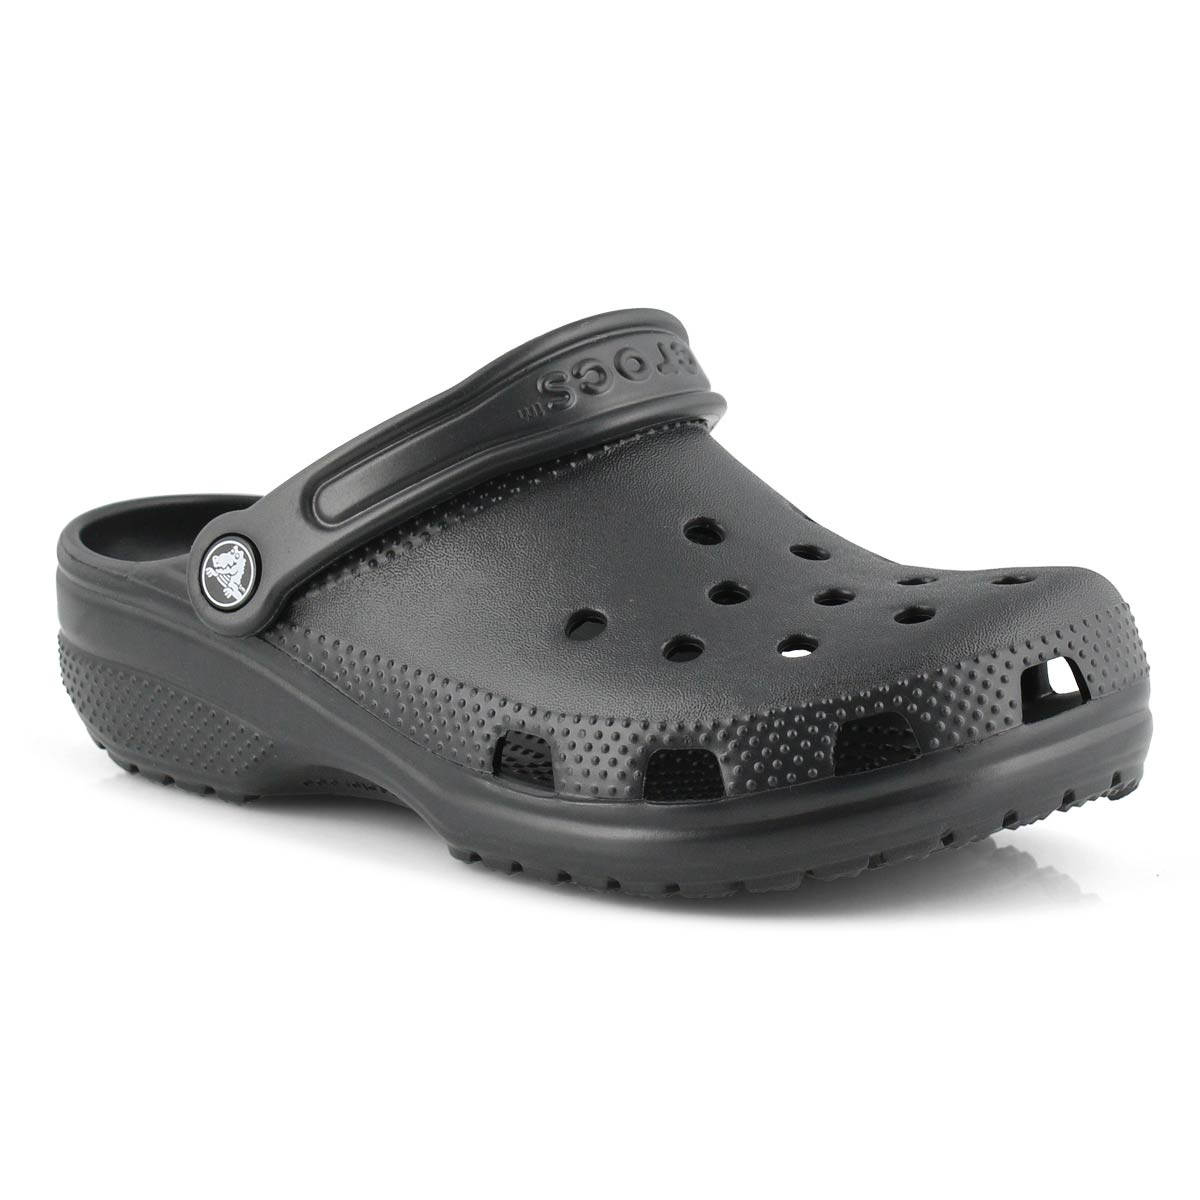 softmoc crocs